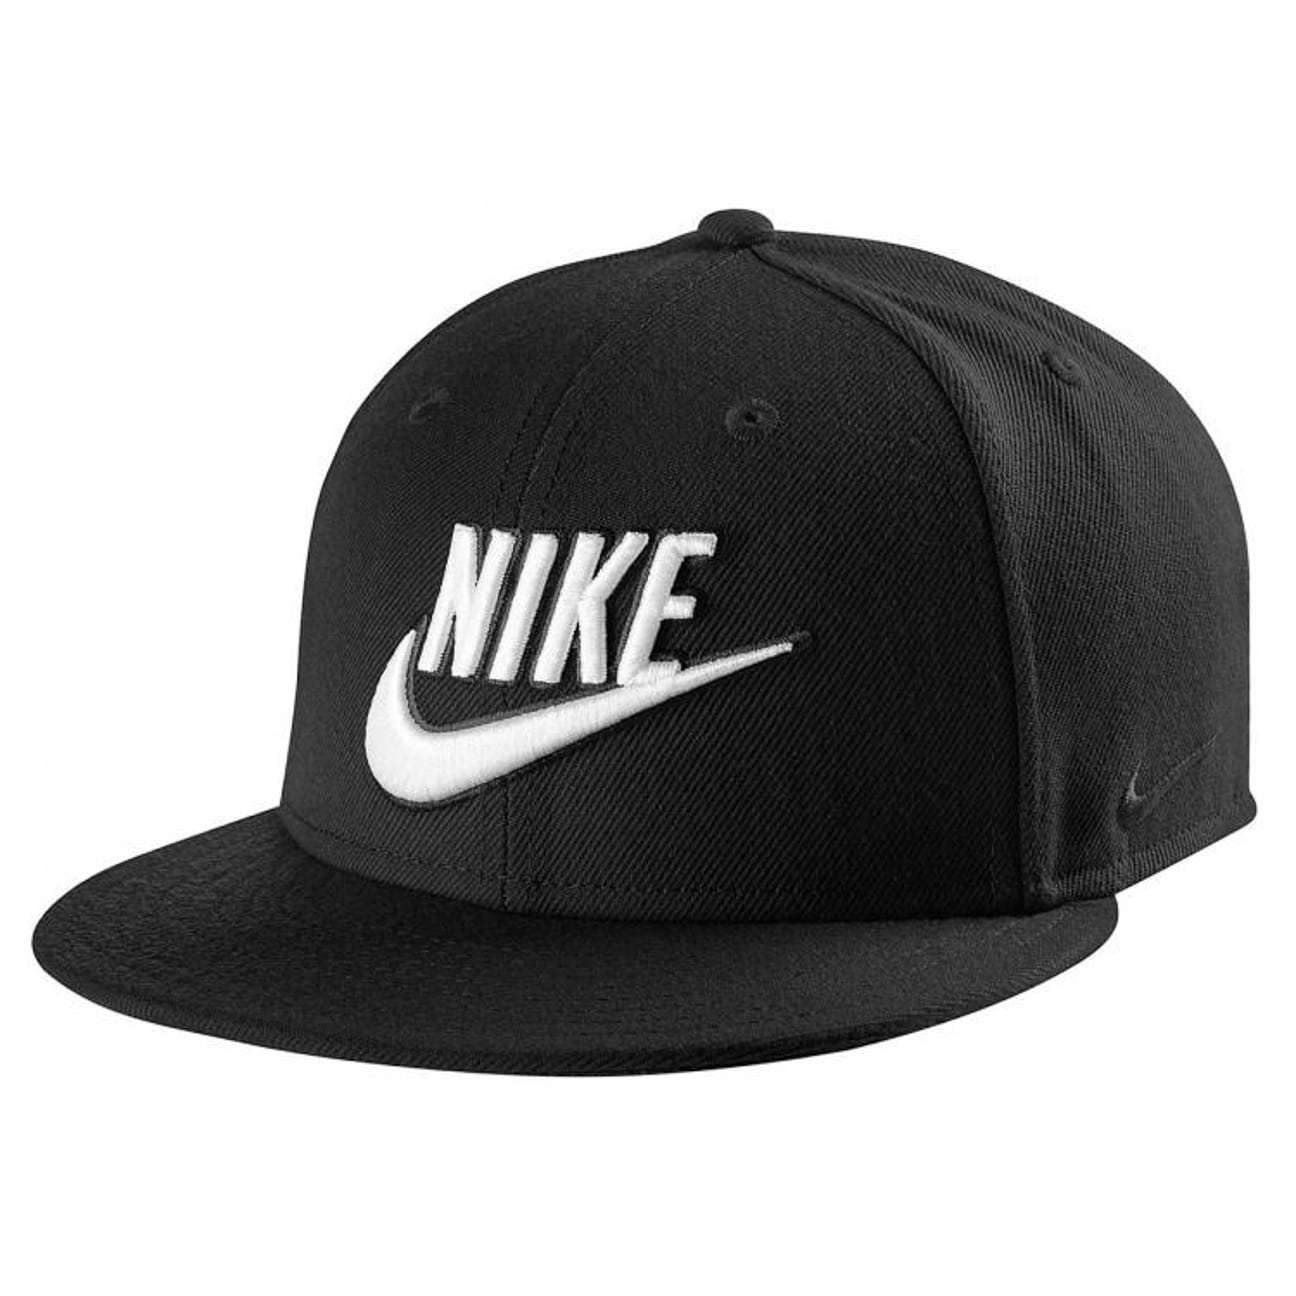 casquette true snapback by nike casquettes. Black Bedroom Furniture Sets. Home Design Ideas